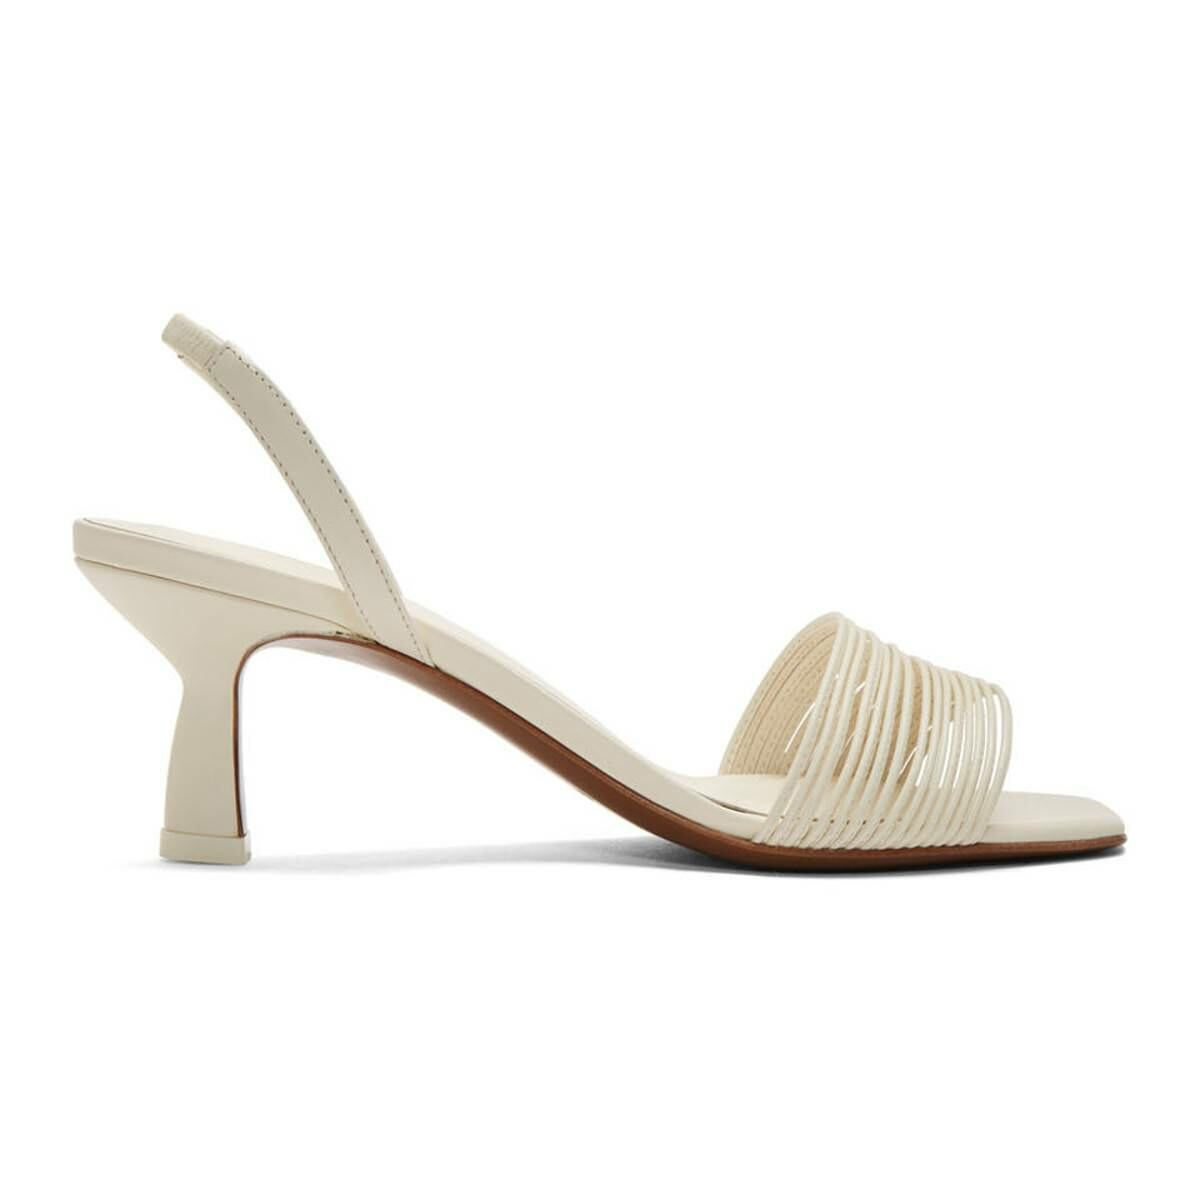 NEOUS Off-White Rossi 55 Slingback Heeled Sandals Ssense USA WOMEN Women SHOES Womens SANDALS